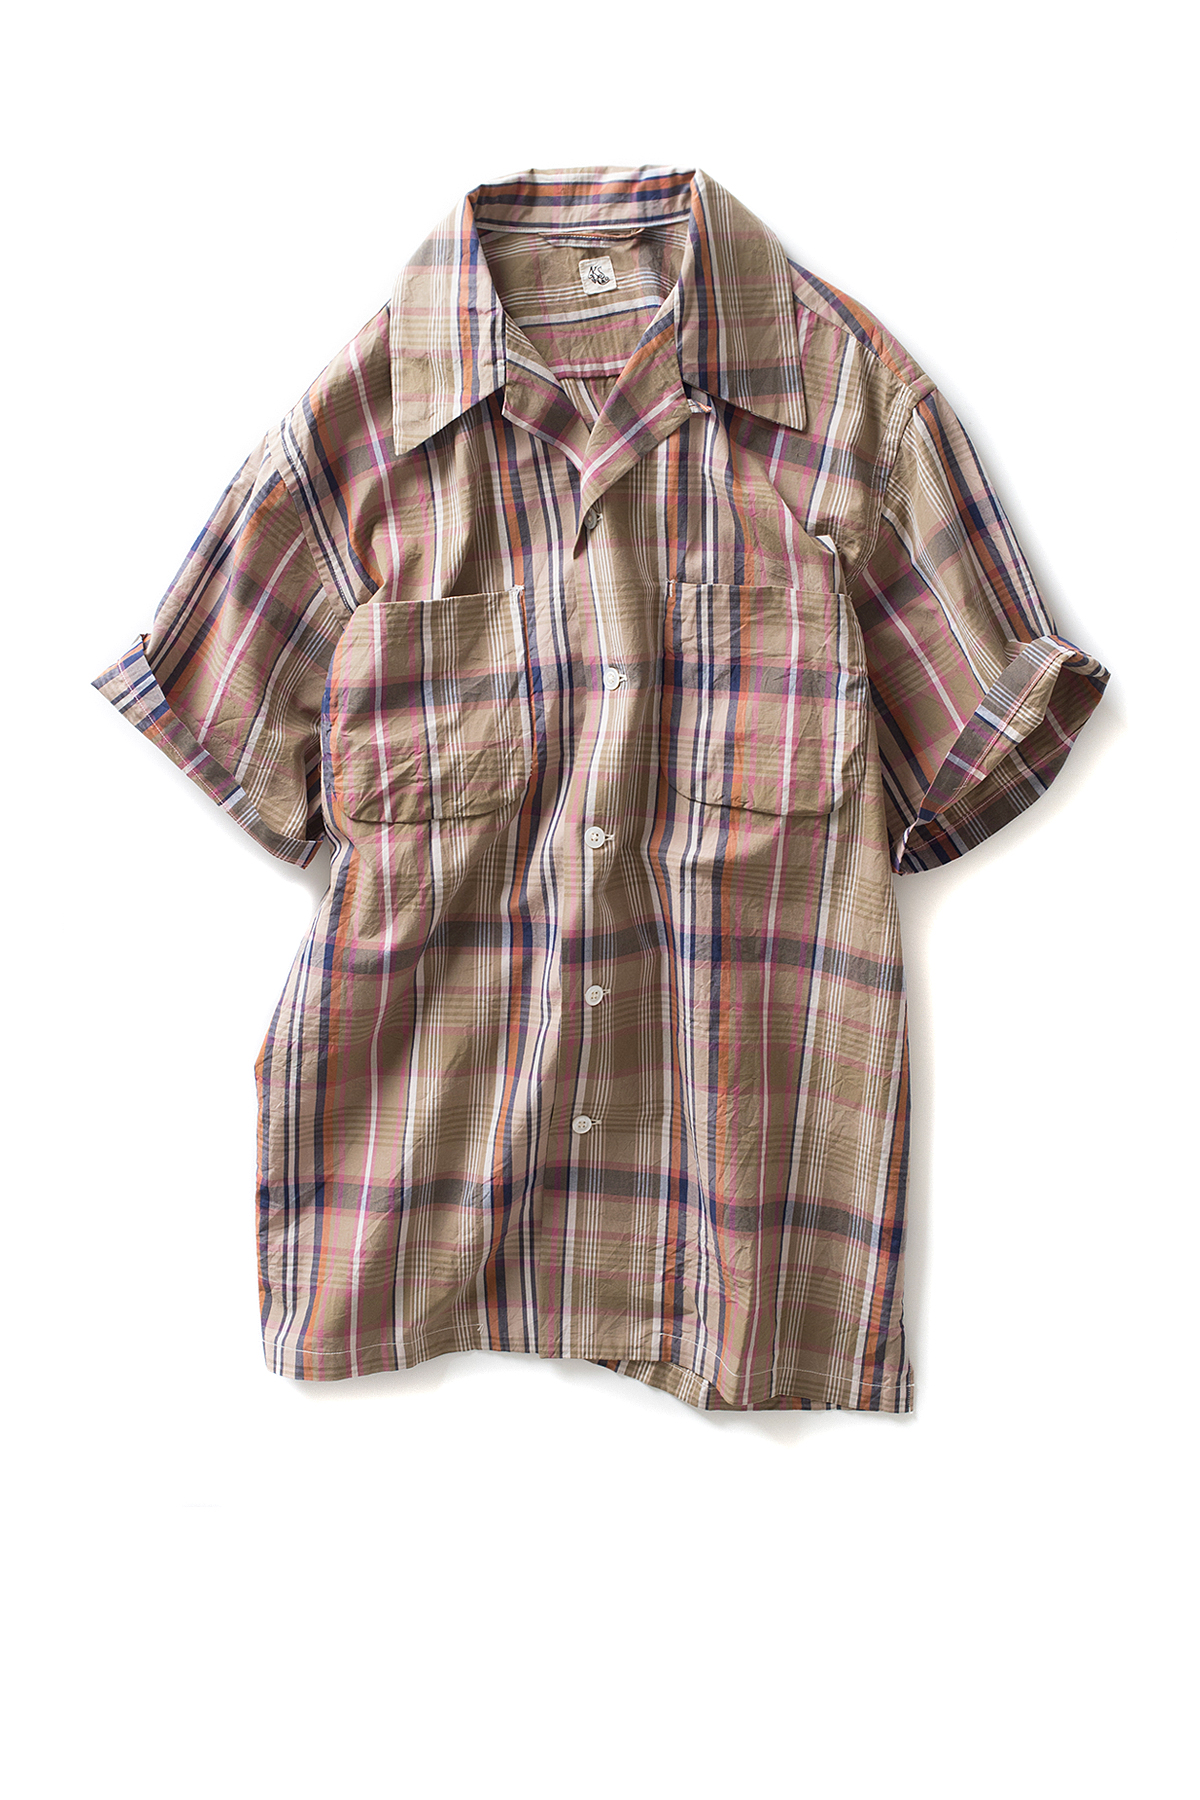 Kaptain Sunshine : Vacation Shirt (Multicolored Check)